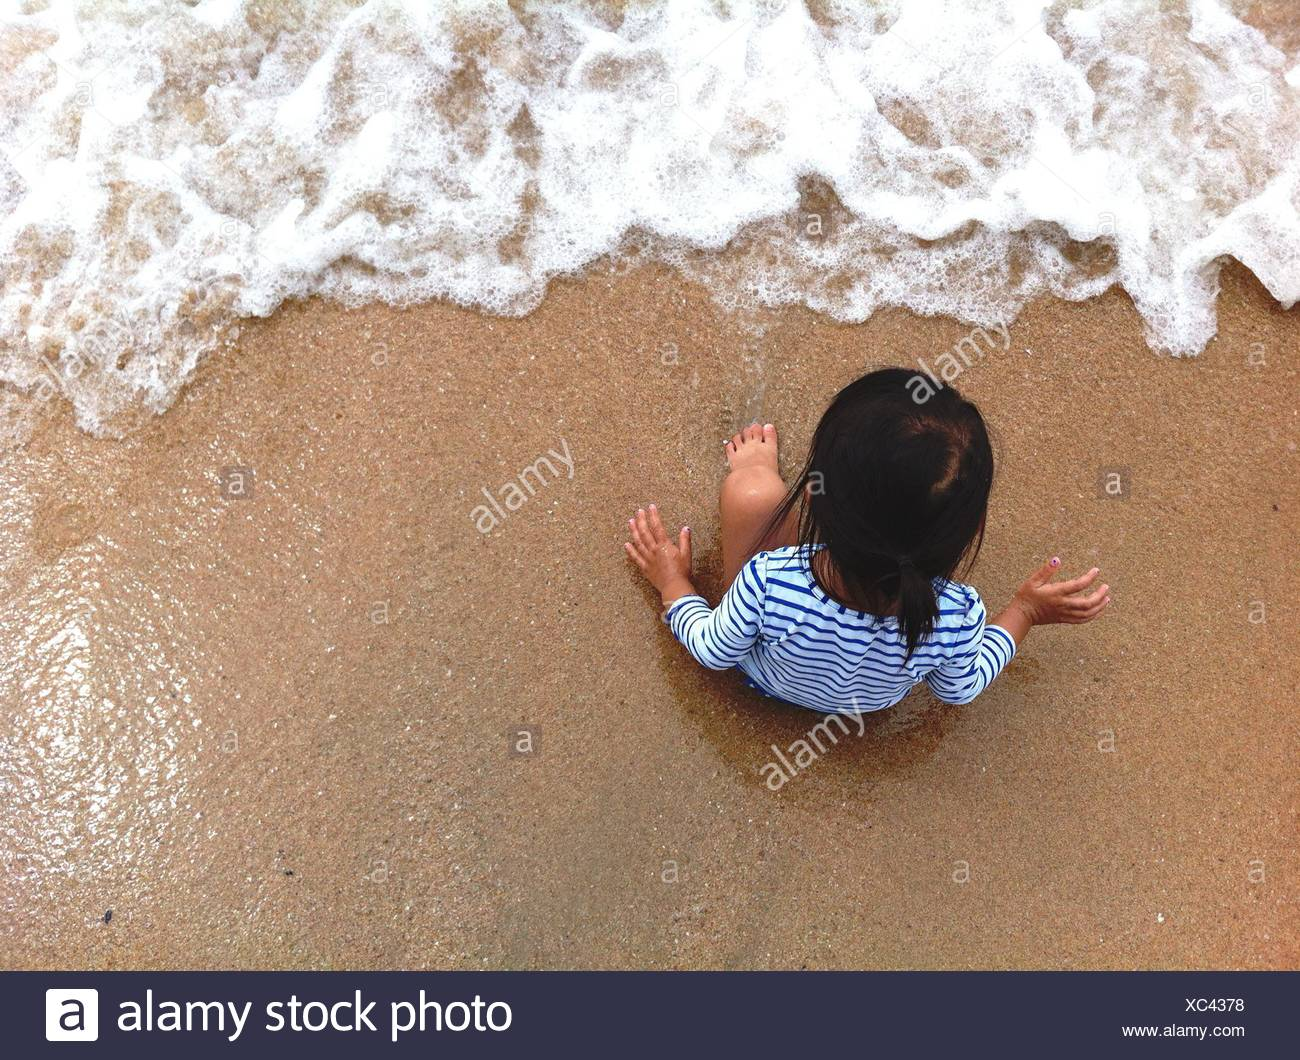 High Angle View Of Child On Beach - Stock Image